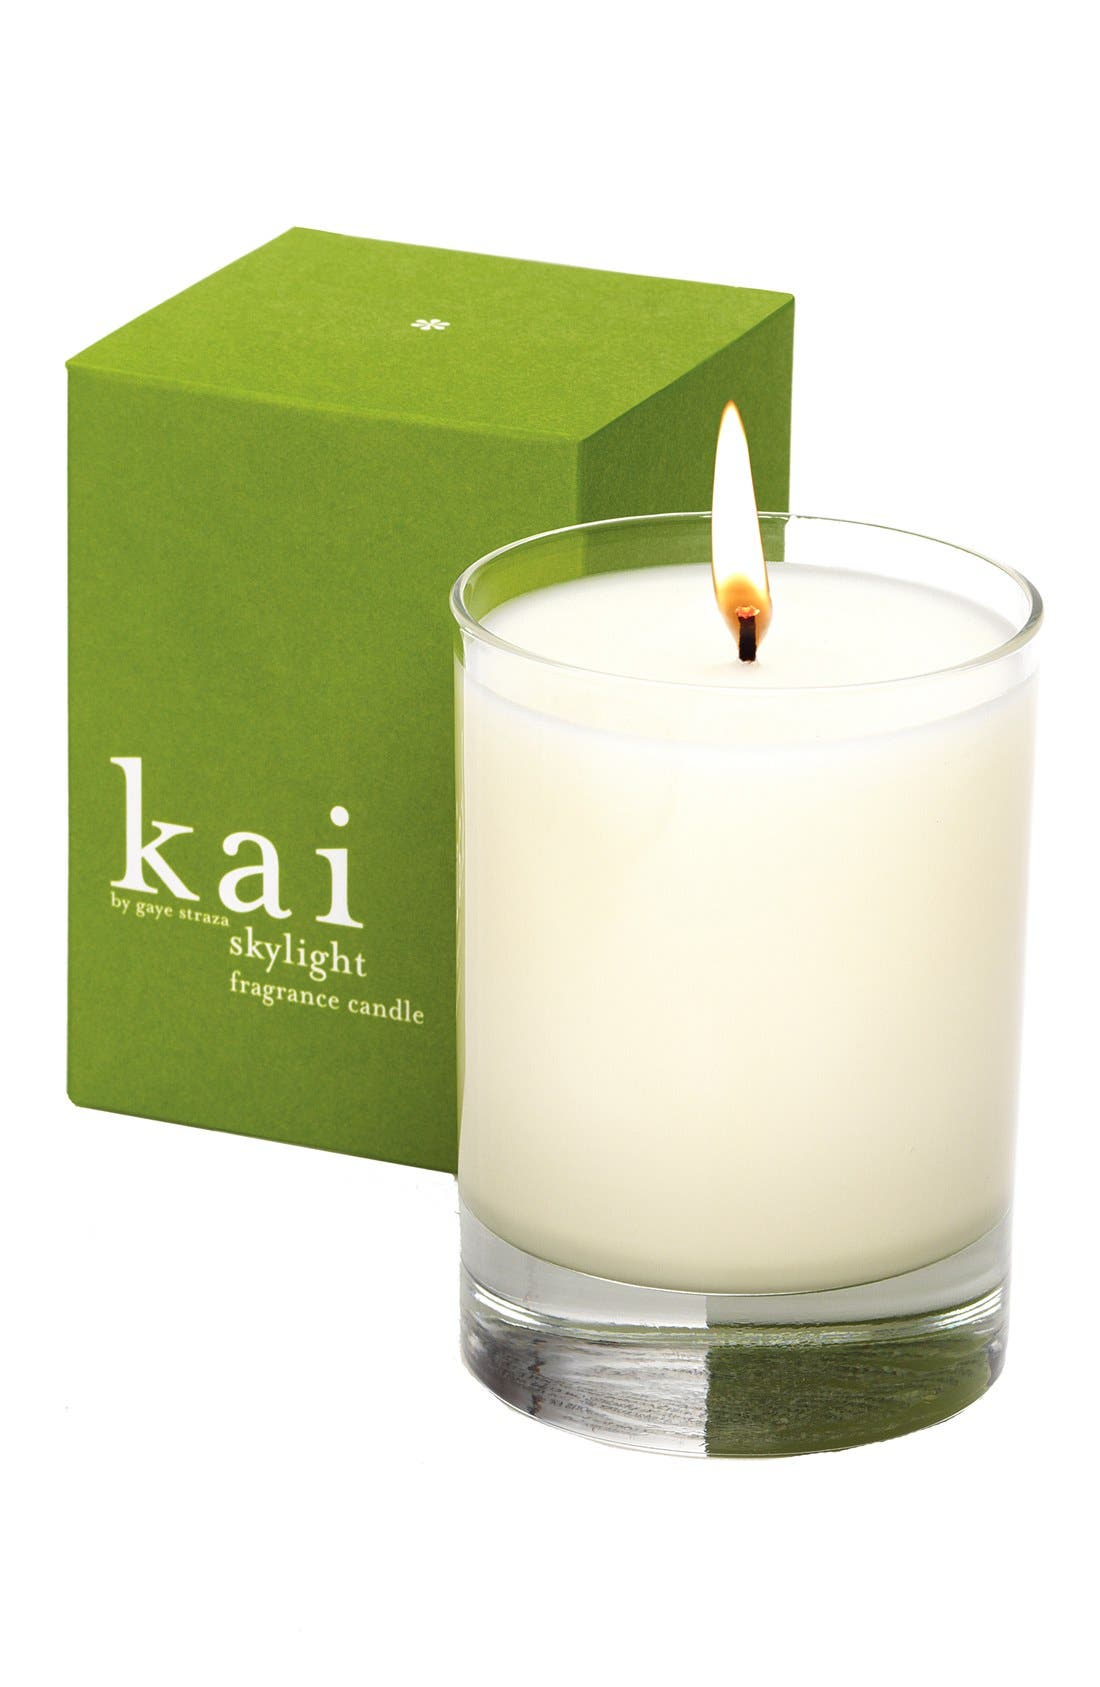 Alternate Image 1 Selected - kai 'Skylight' Fragrance Candle